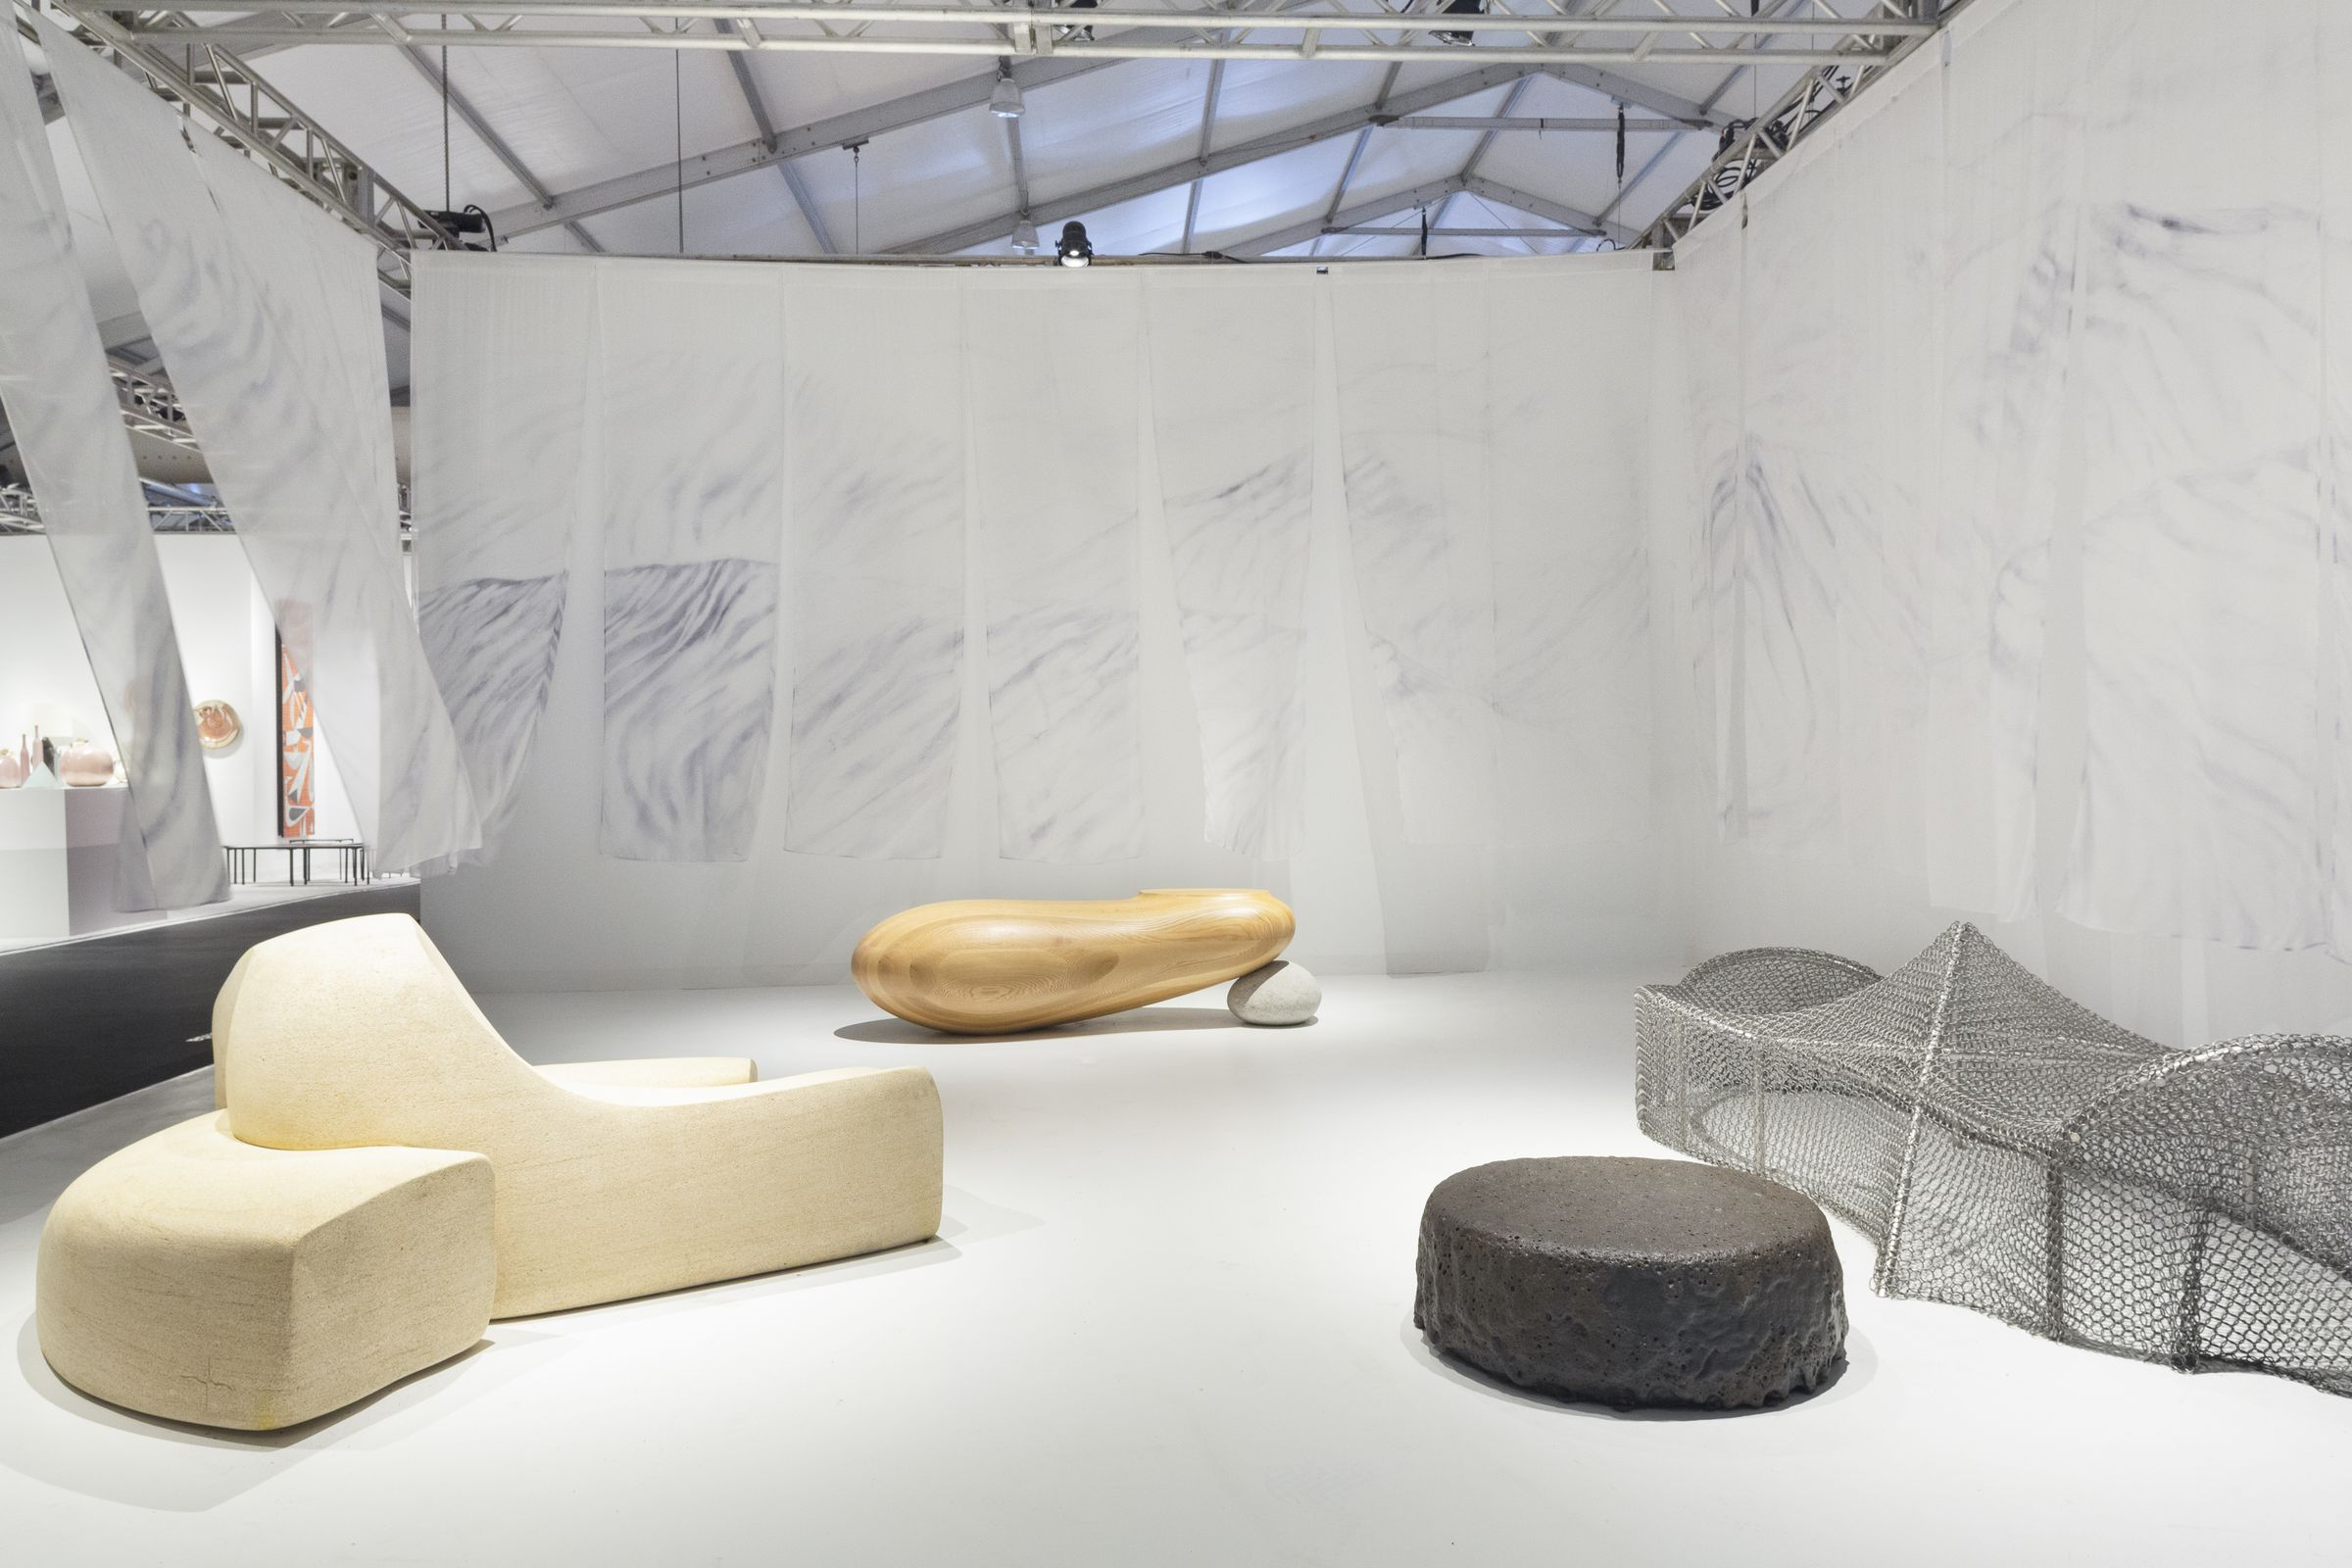 Friedman Benda at Design Miami 2018. Photo courtesy of Friedman Benda.